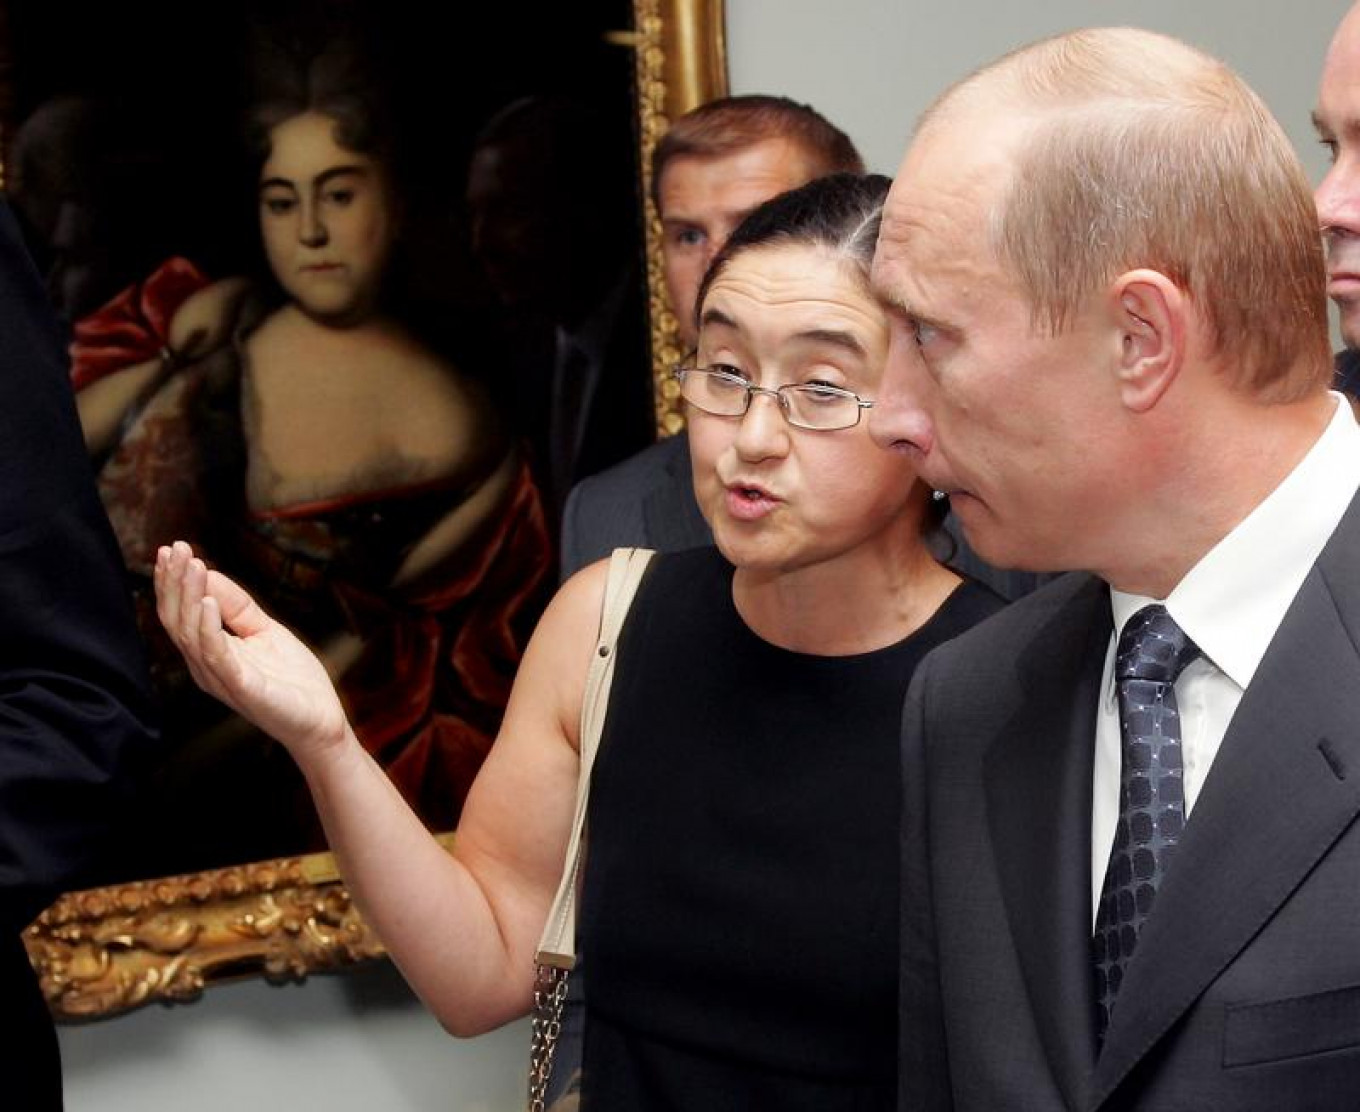 """Russian President Vladimir Putin (R) takes a tour of """"Russia!"""" with Zelfira Tregulova at the Guggenheim Museum in New York, Sept. 14, 2005.  Jeff Zelevansky / Reuters"""